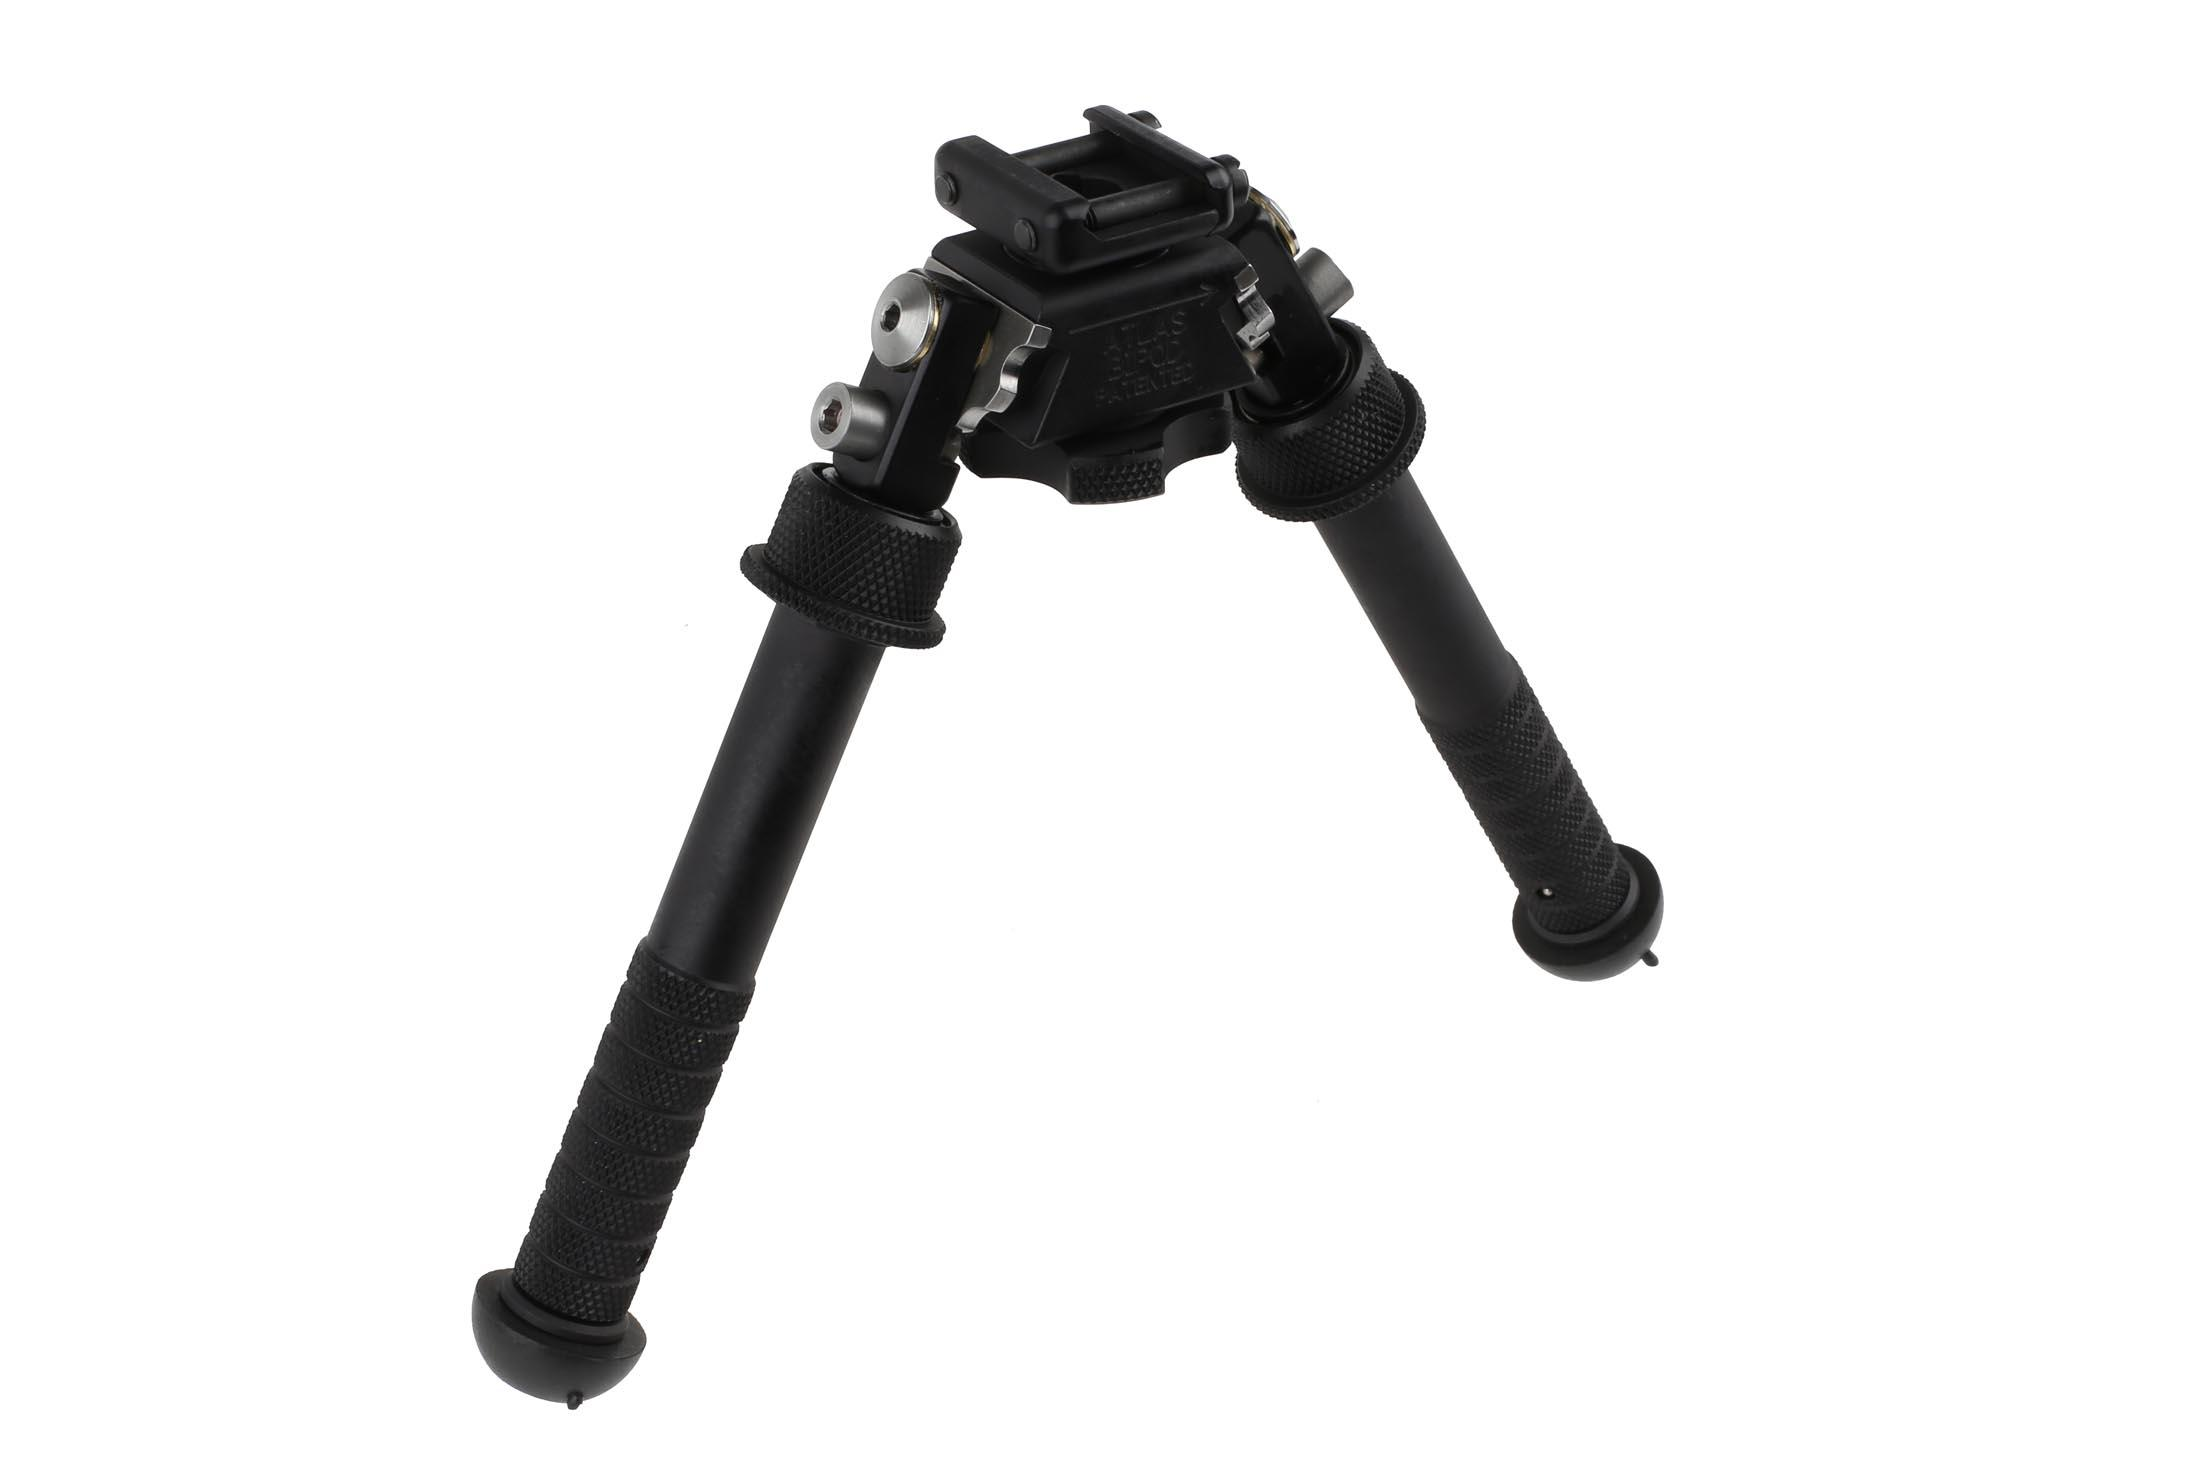 Atlas Precision Bipod w/ Rail Clamp